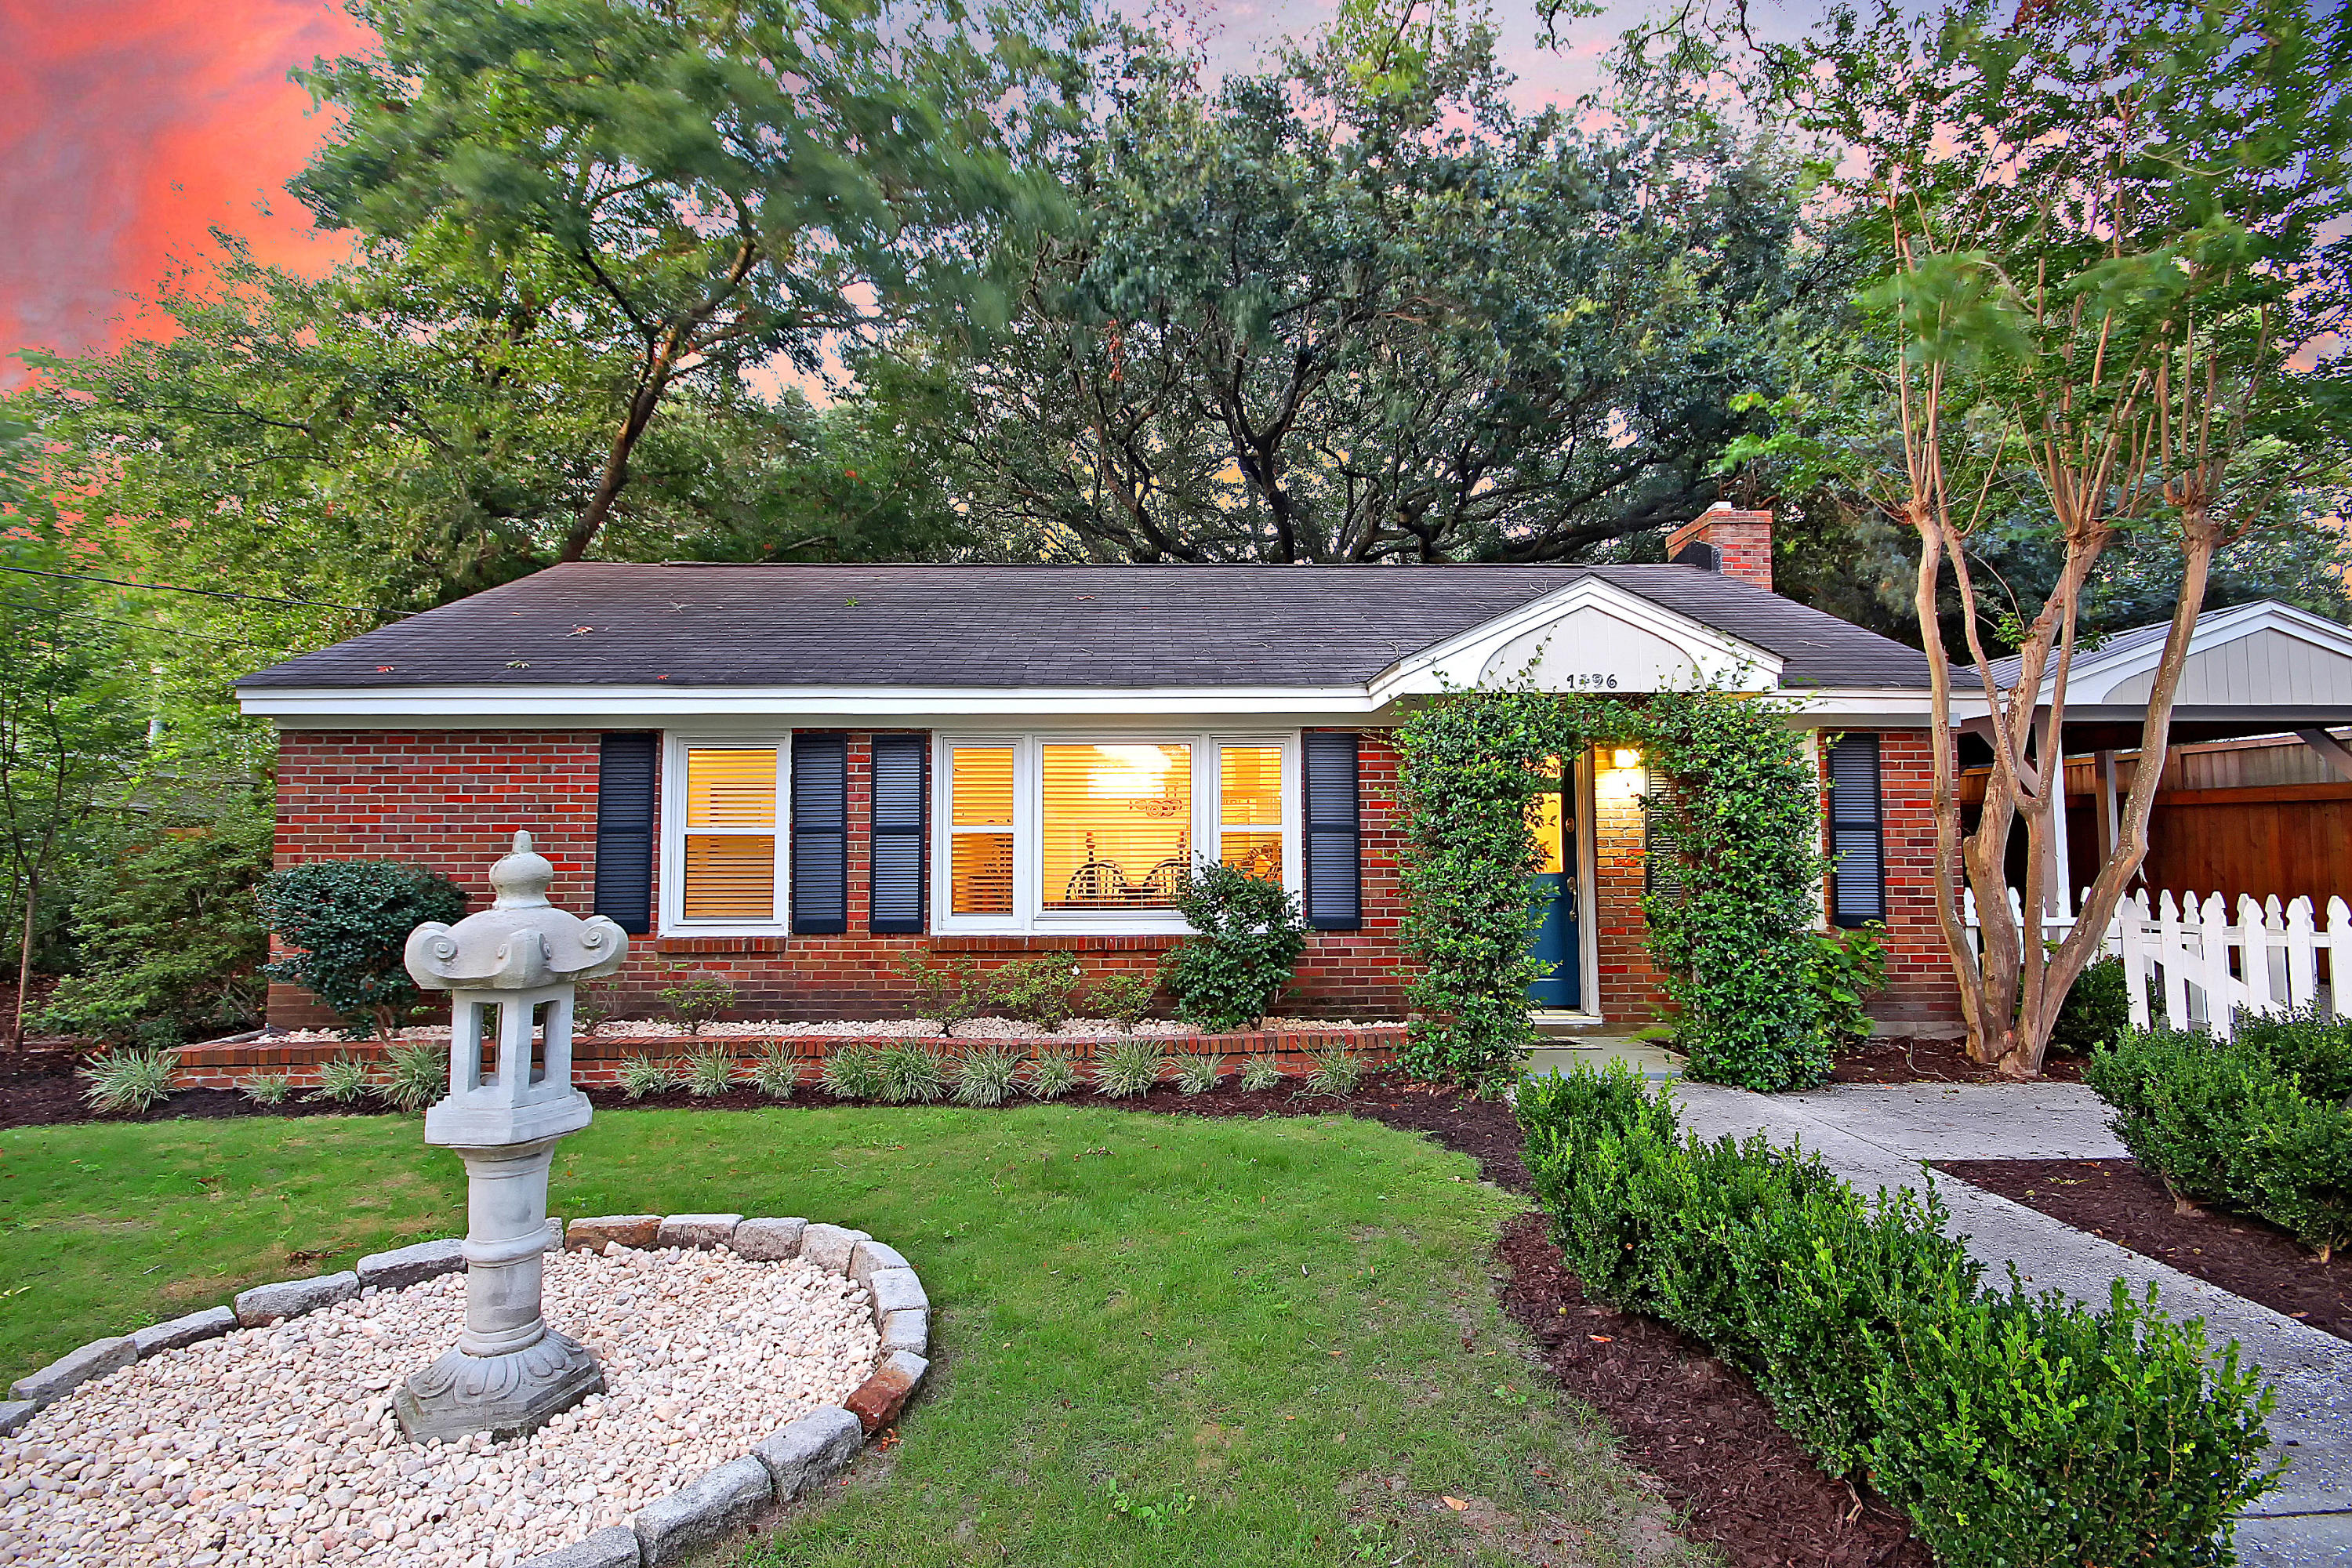 Old Mt Pleasant Homes For Sale - 1496 Indian, Mount Pleasant, SC - 3